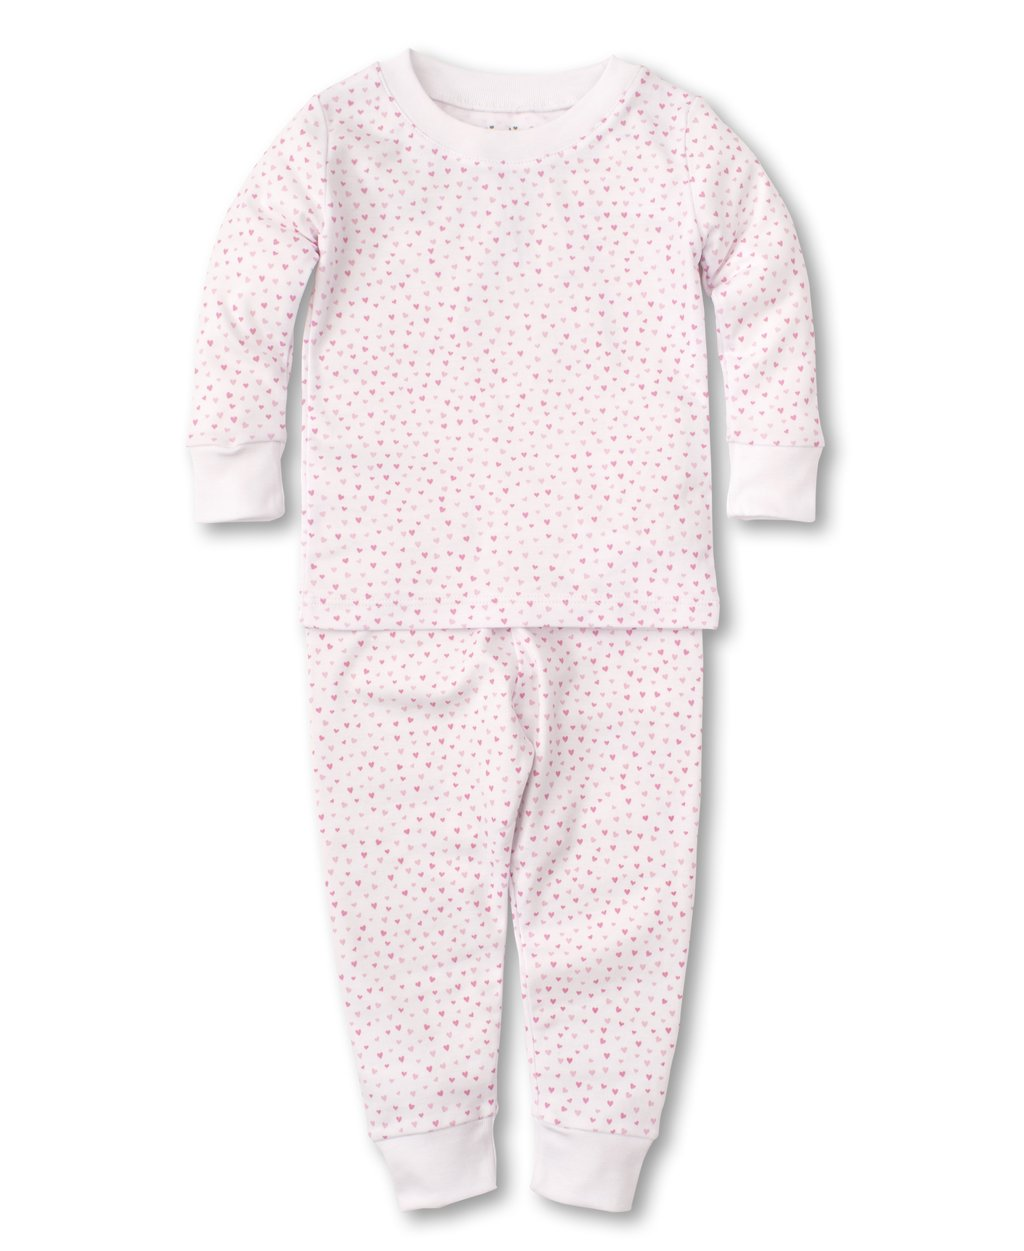 Sweethearts Pajama Set - 4-6 Girls